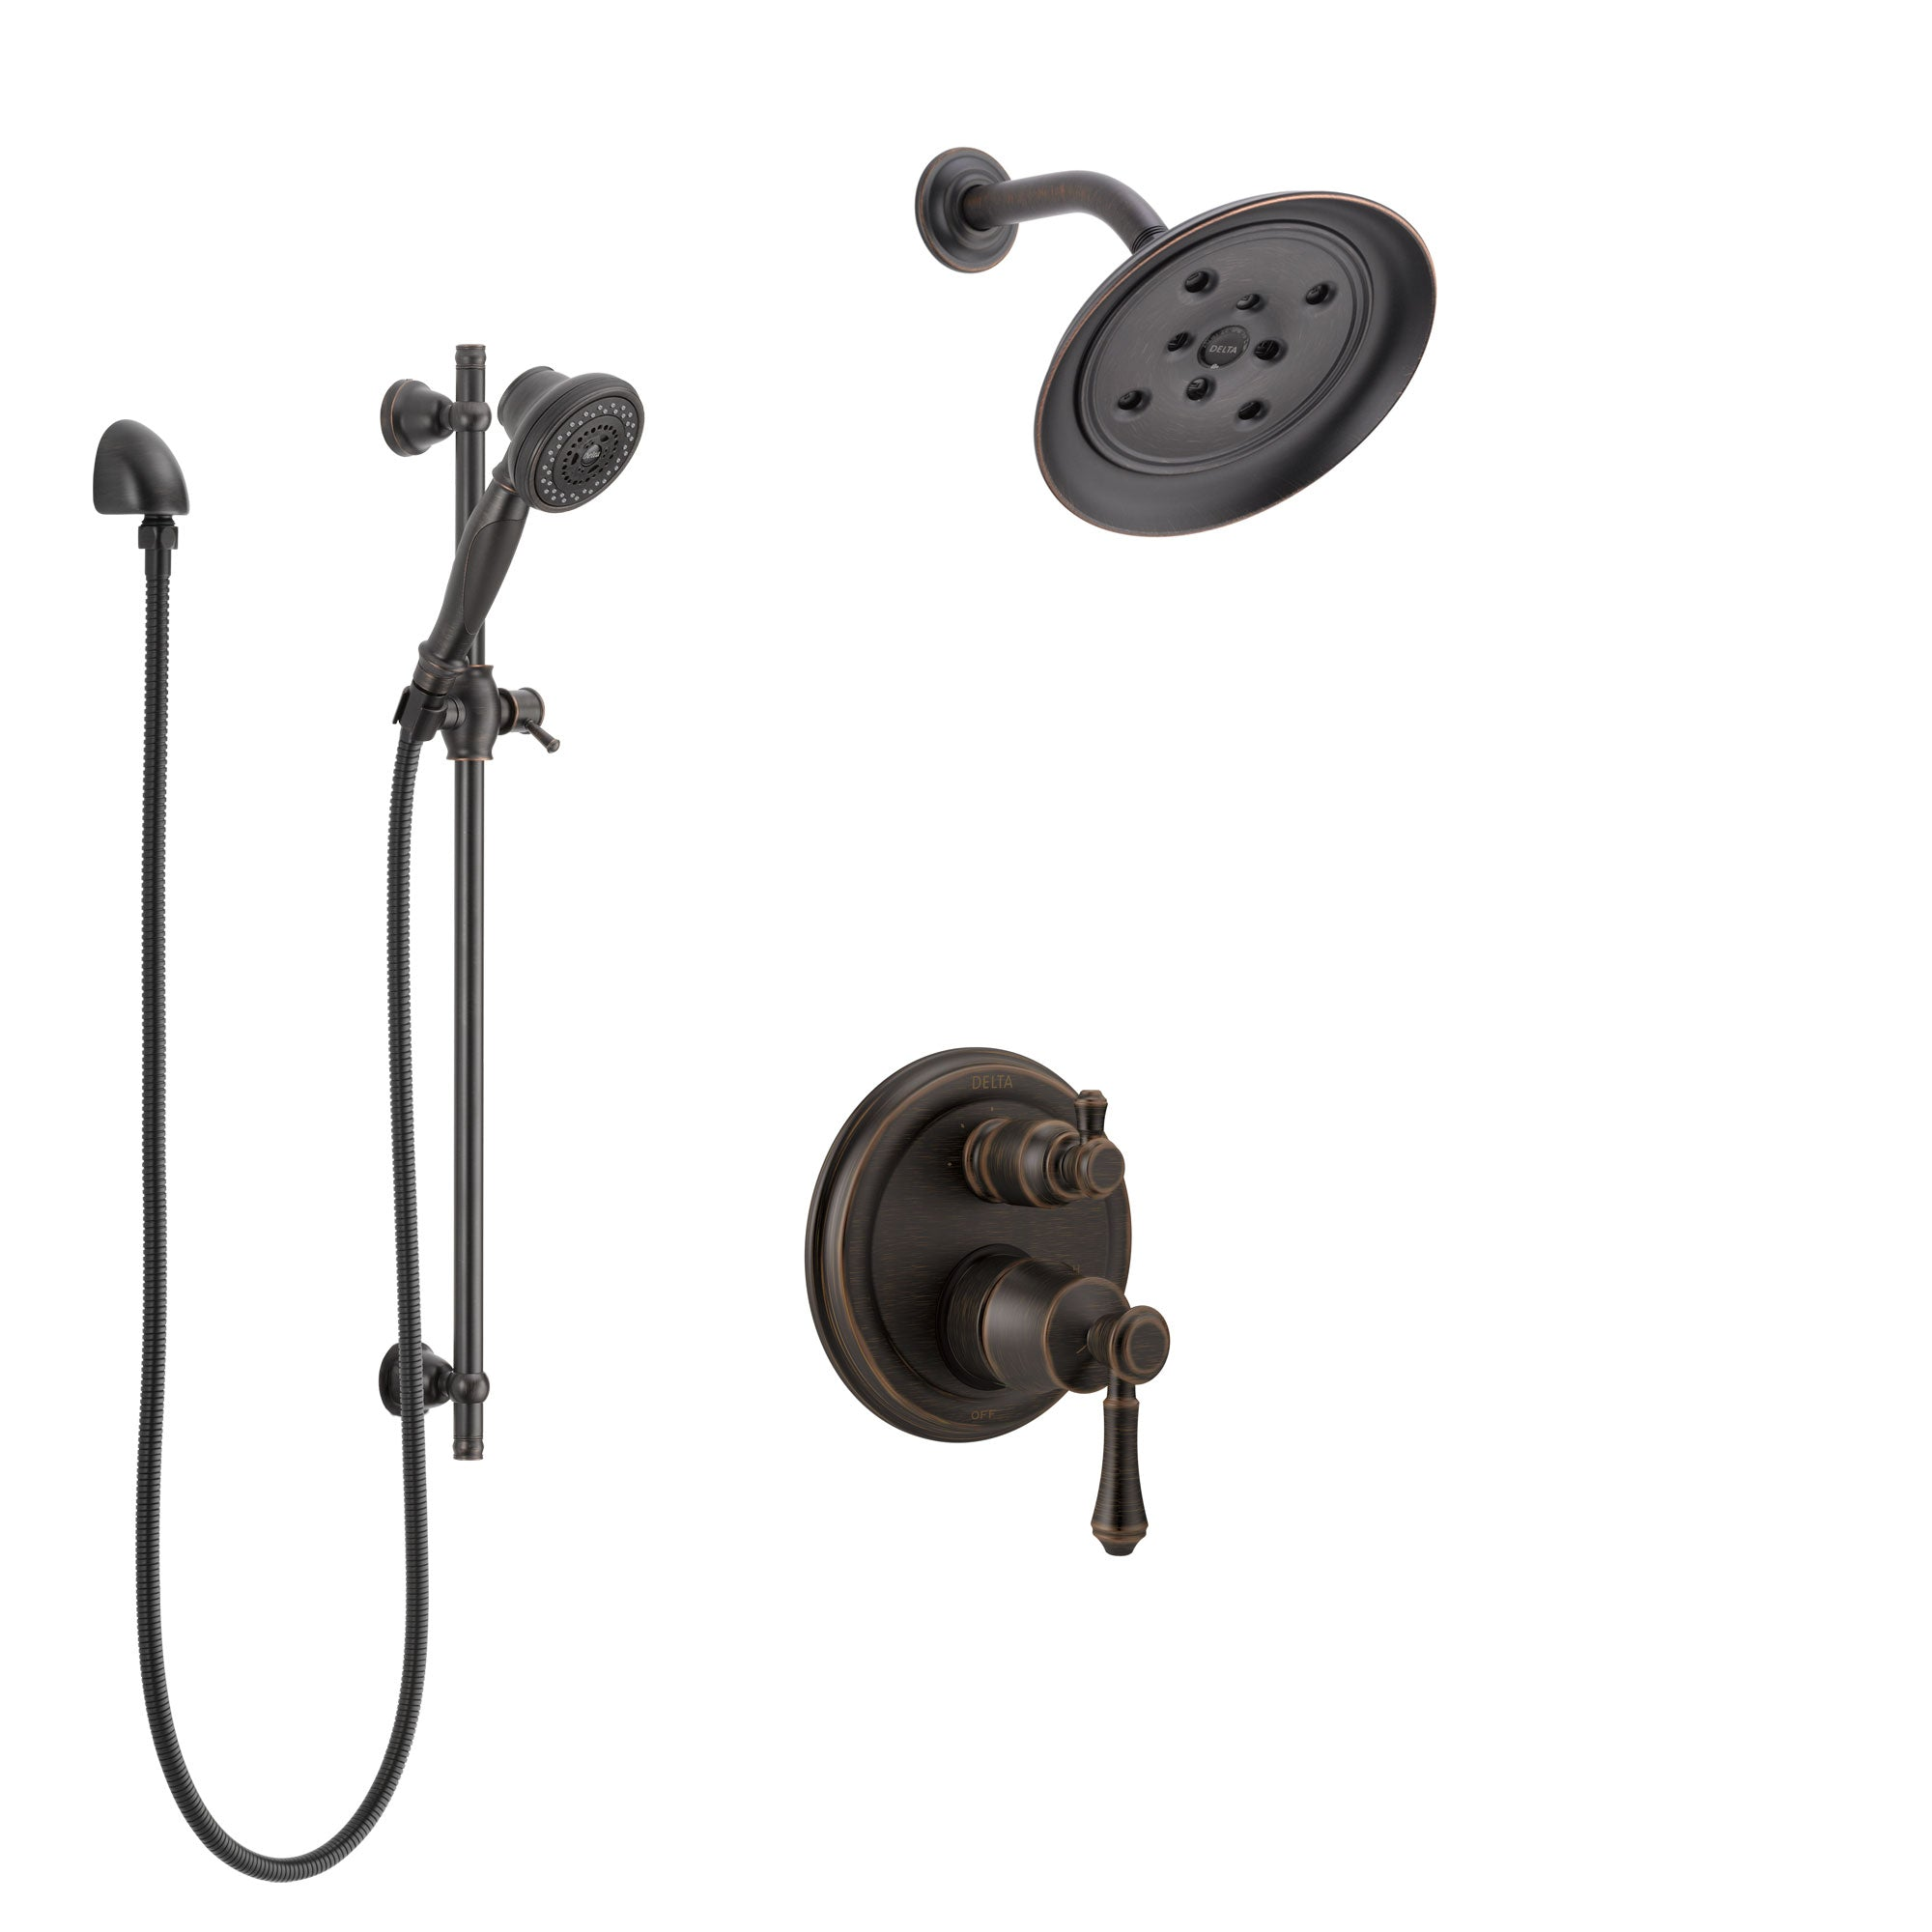 Delta Cassidy Venetian Bronze Shower System with Control Handle, Integrated 3-Setting Diverter, Showerhead, and Hand Shower with Slidebar SS24897RB1